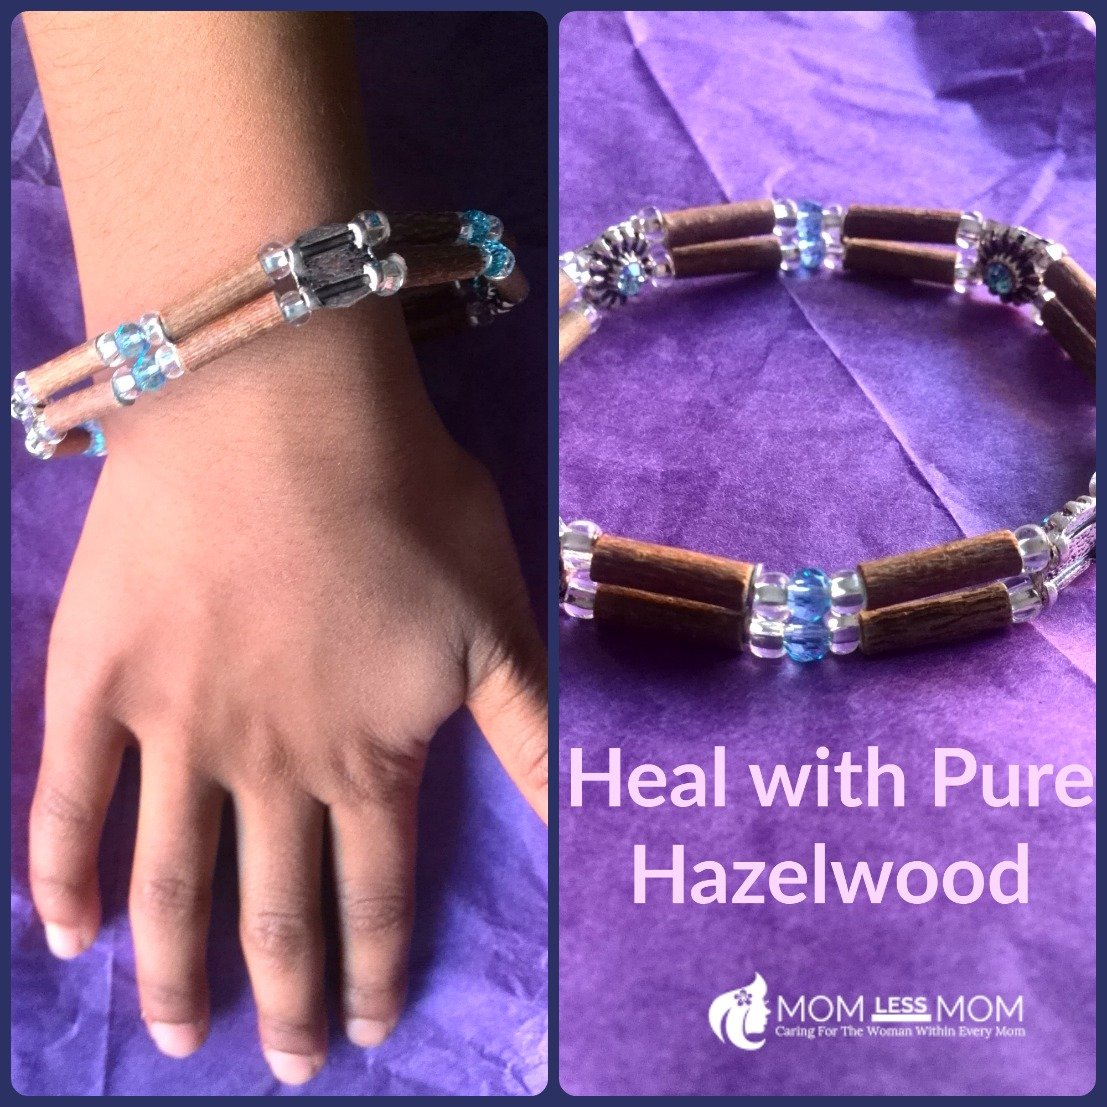 Heal with Pure Hazelwood